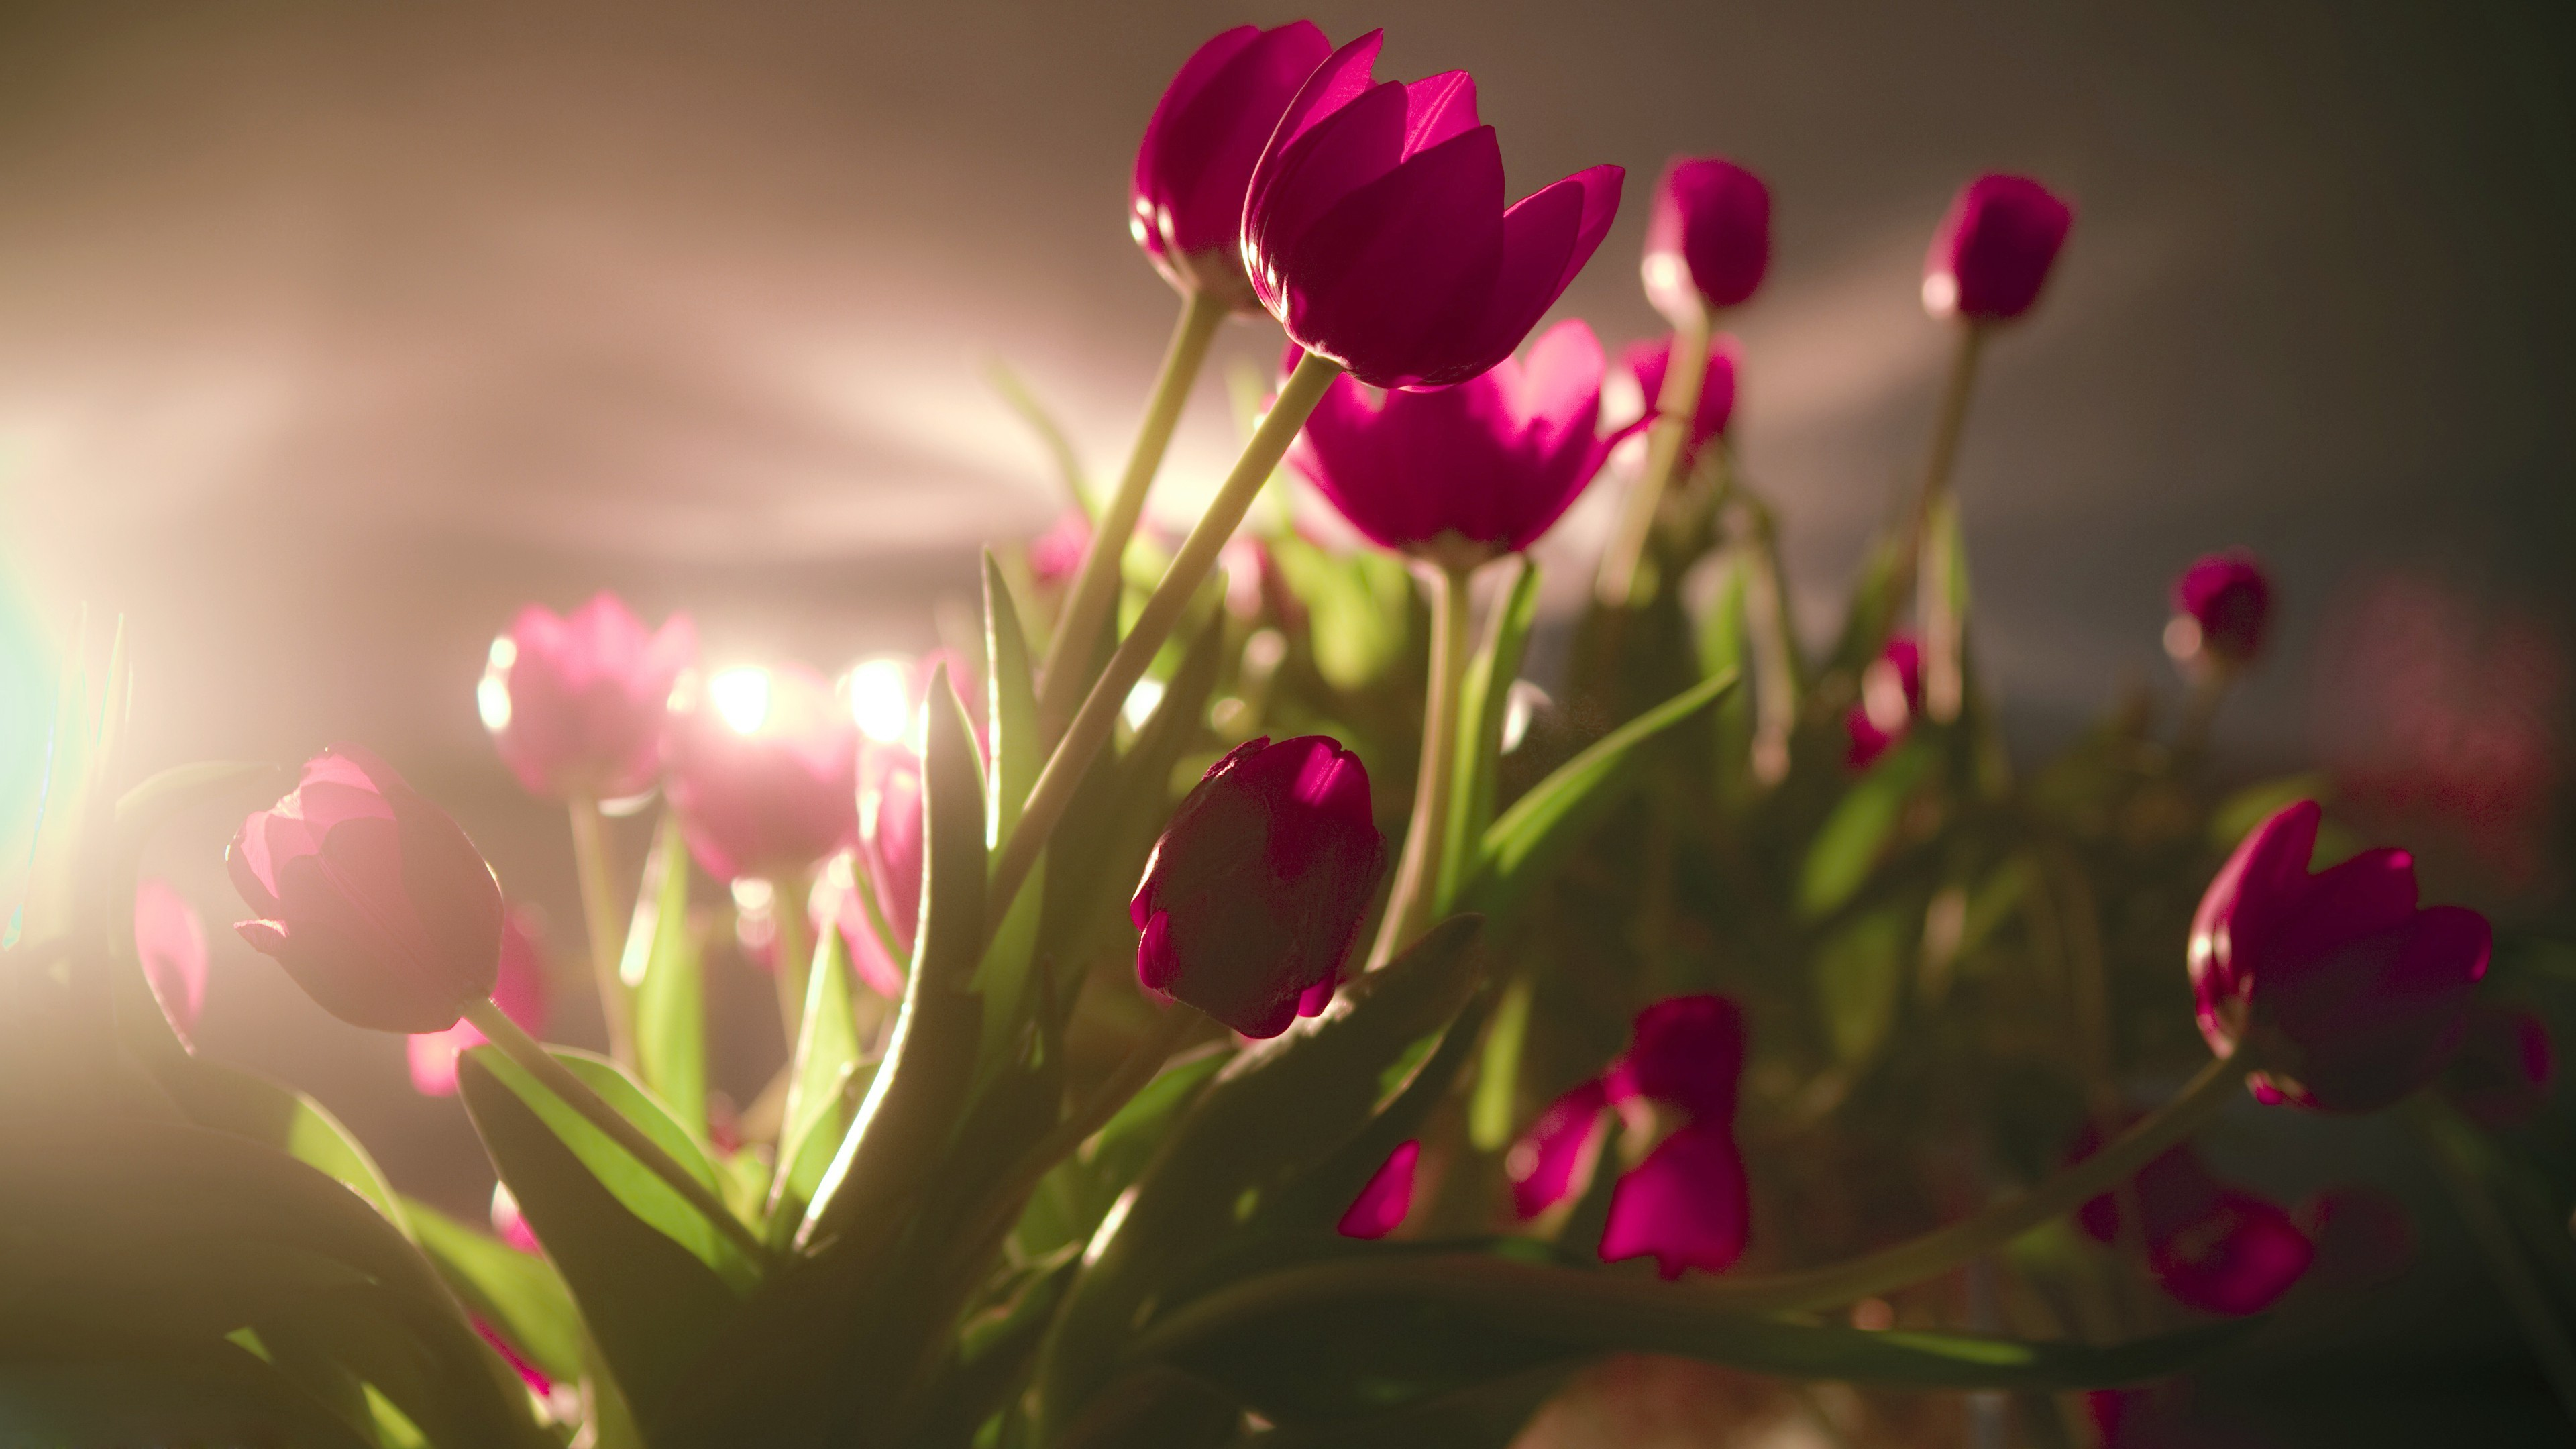 Beautiful Flowers Tulip Hd Wallpapers Images